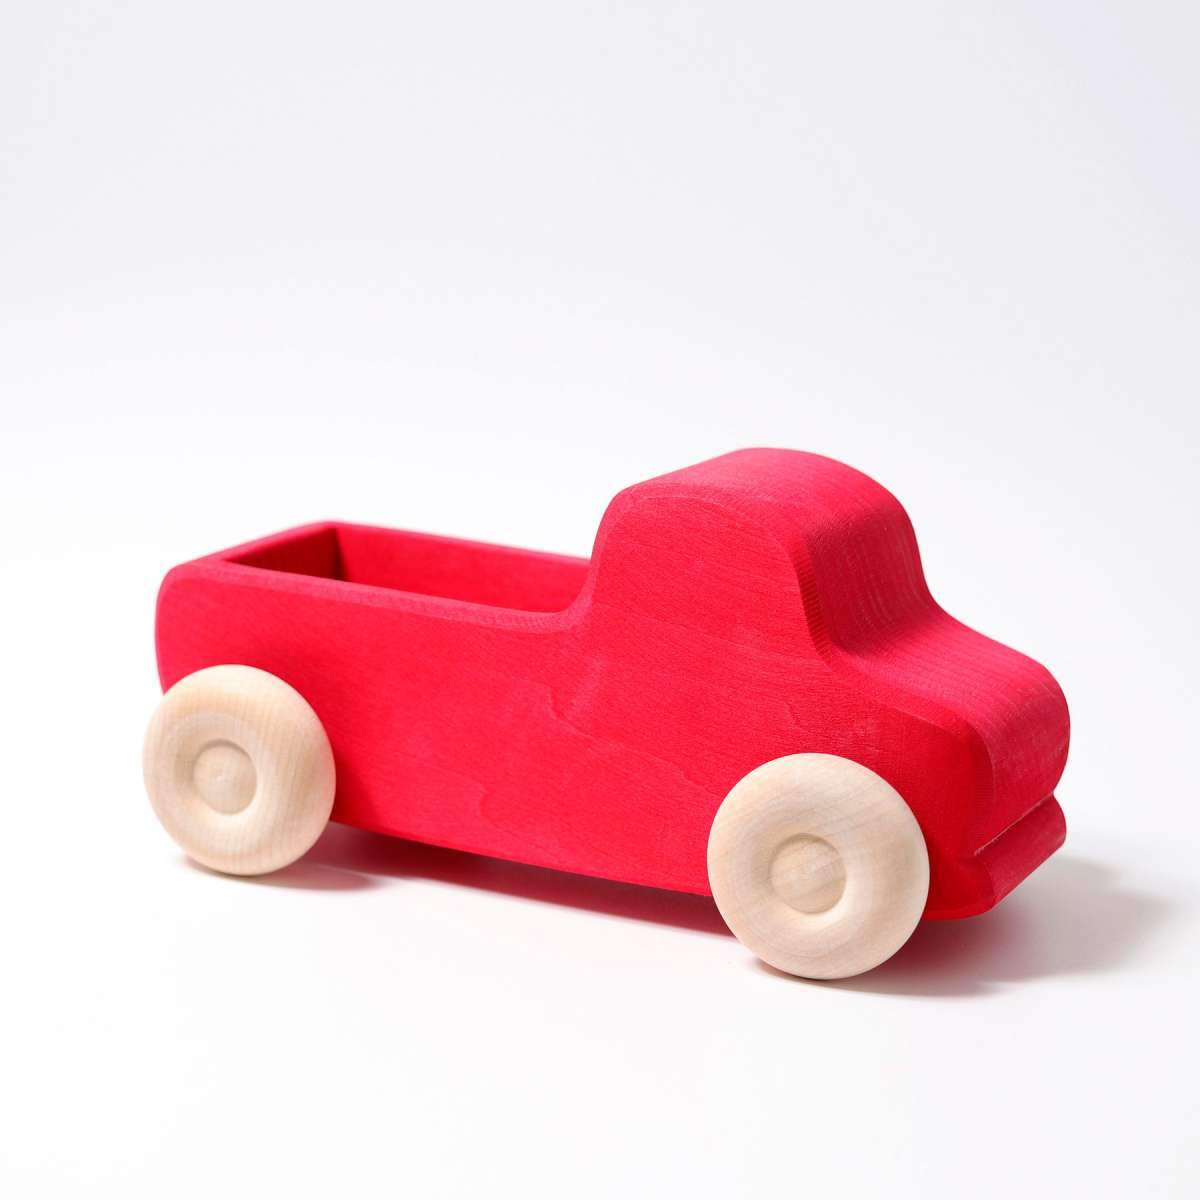 Grimms Large Red Truck Grimms Wooden Toys at Little Earth Nest Eco Shop